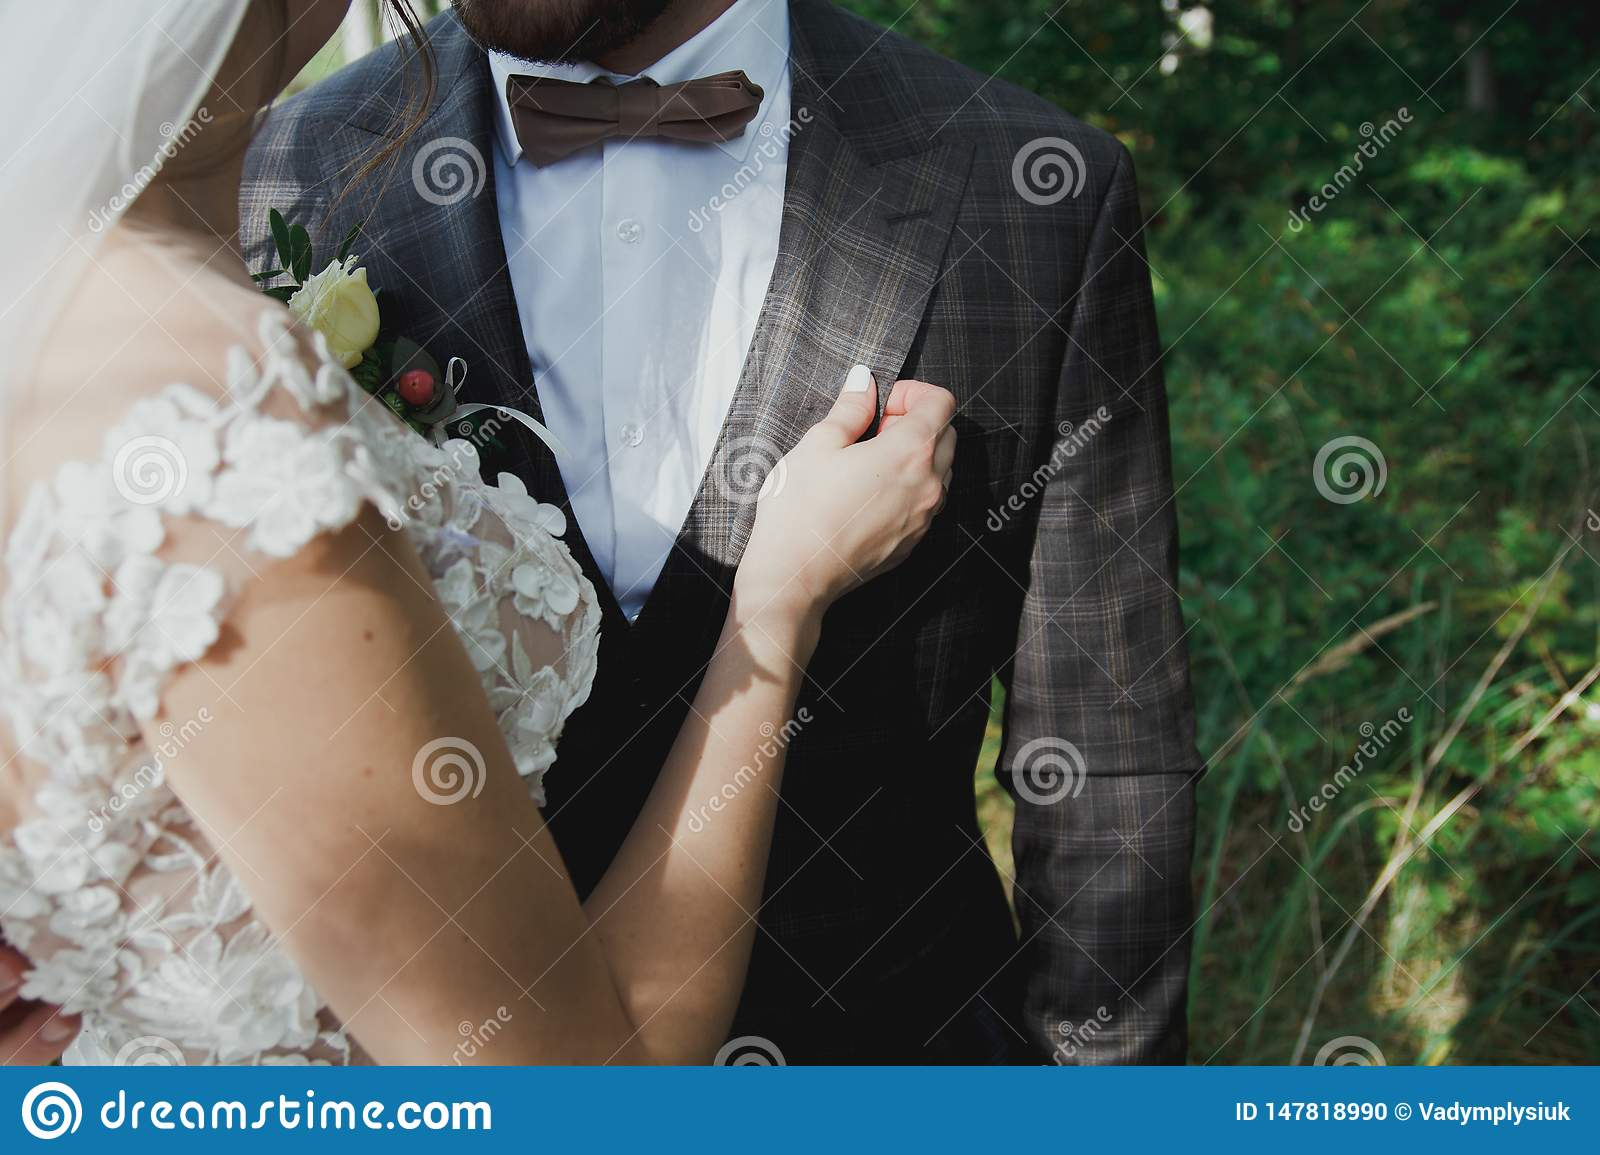 Beautiful wedding couple in the forest. The bride touches the groom in bow tie tenderly. Wedding buttonhole and checkered suit in